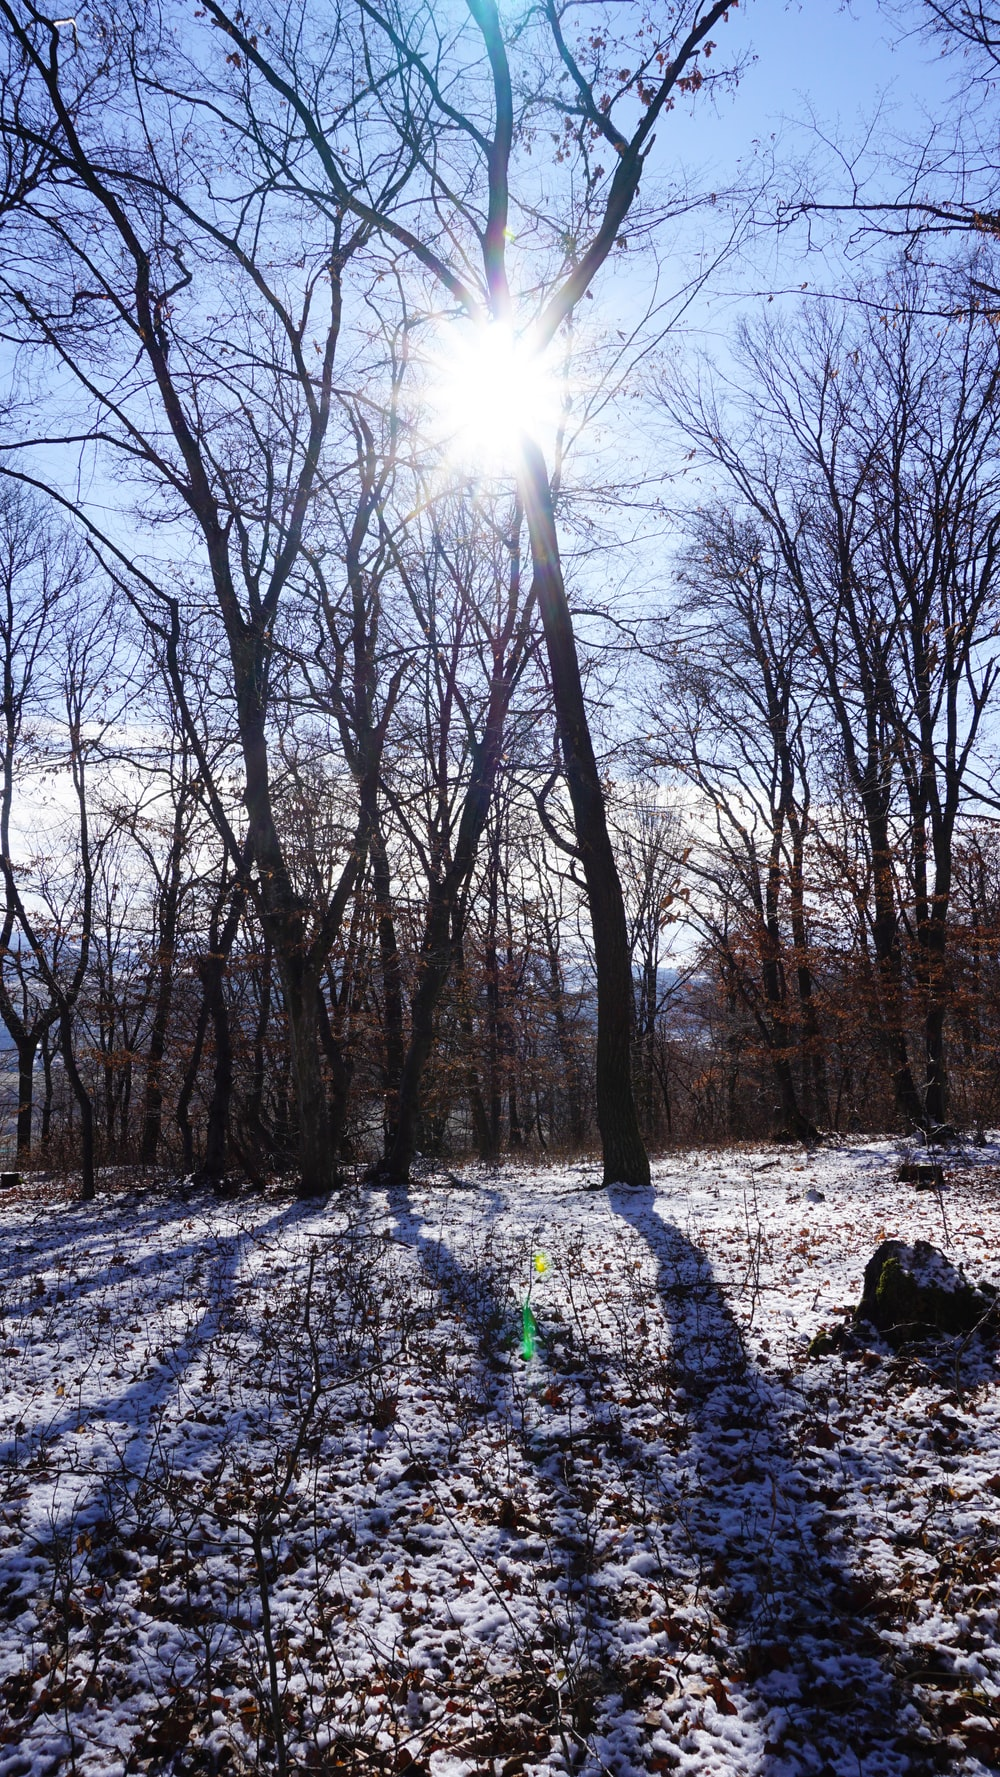 bare trees on snow covered ground during daytime